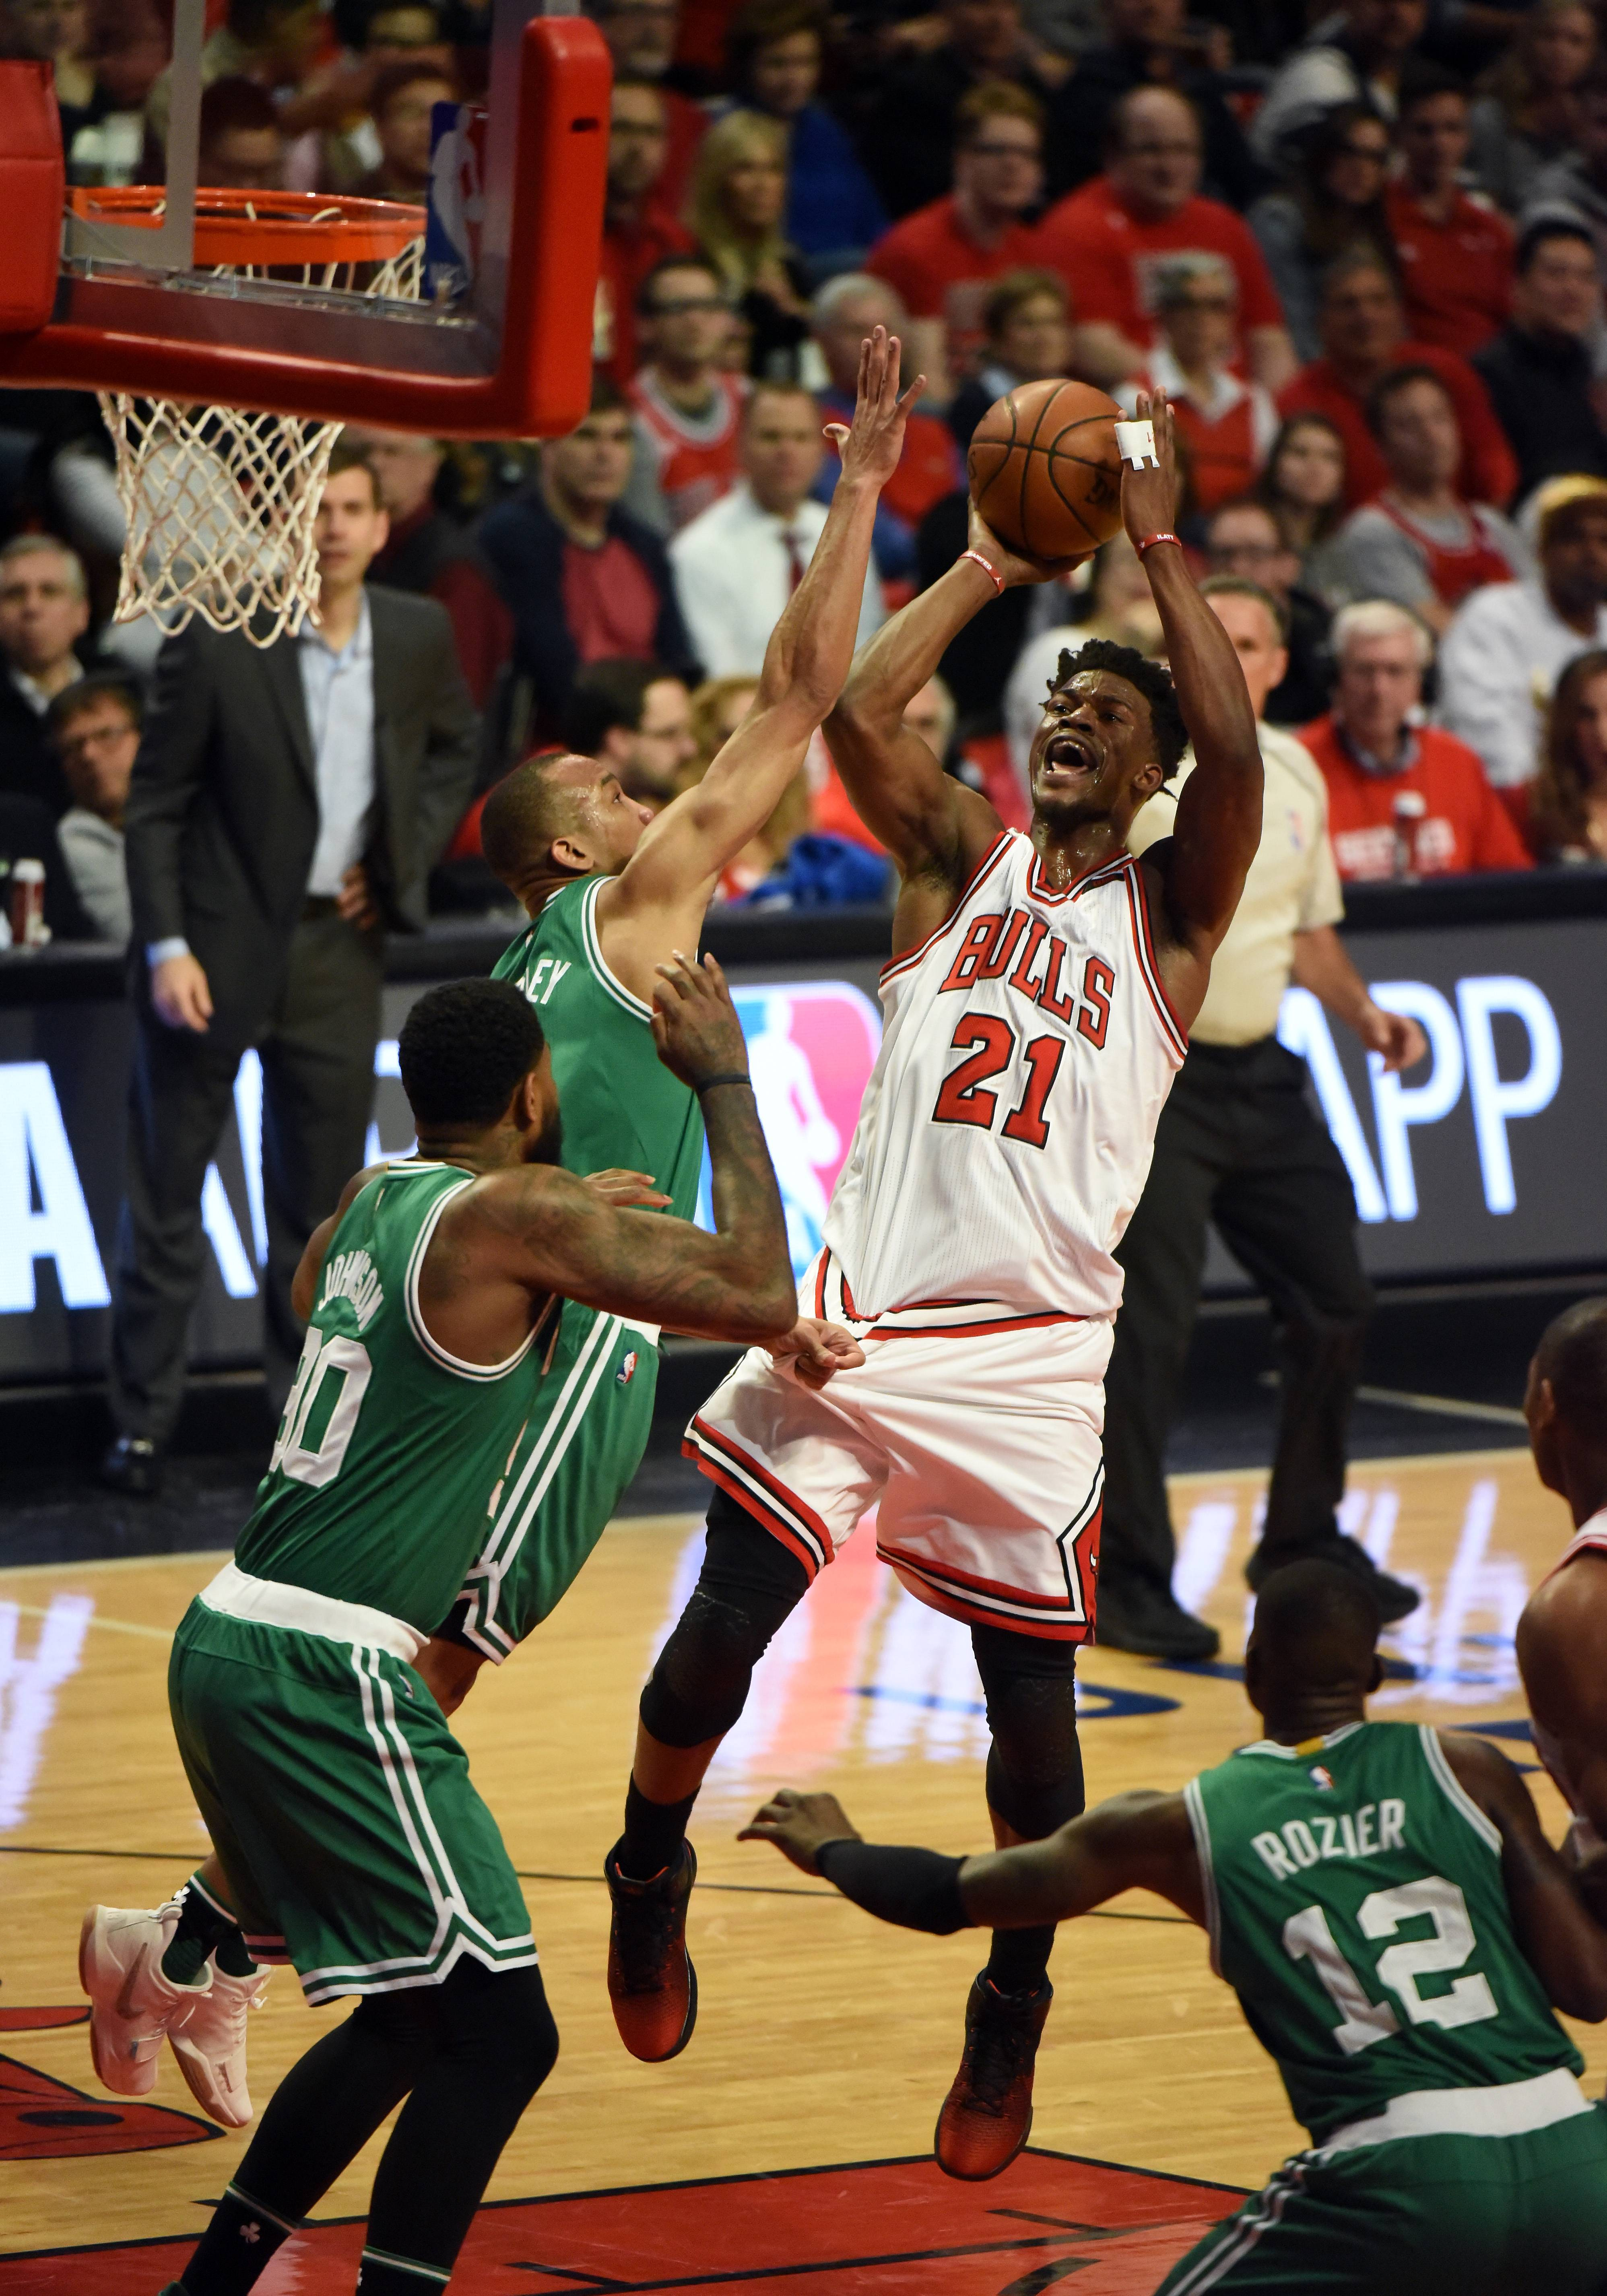 Chicago Bulls' Jimmy Butler, center, drives to the basket past Boston Celtics' Avery Bradley, left, and Al Horford during the first quarter of a first-round NBA playoff basketball game in Chicago, Friday, April 21, 2017. (AP Photo/Charles Rex Arbogast)